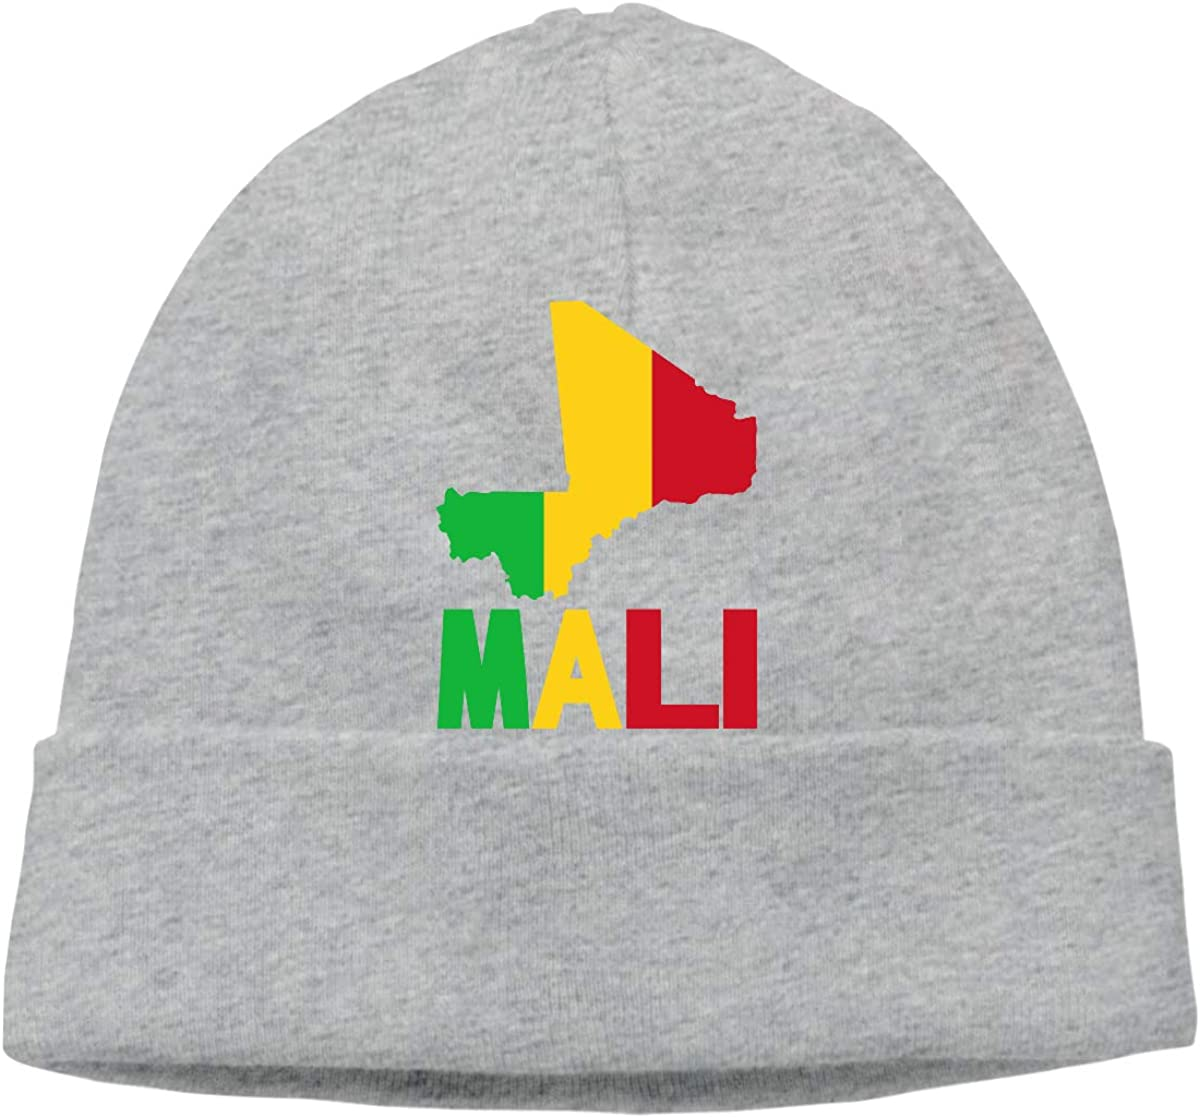 GDSG5/&4 Mali Map Flag and Text Men and Women Knitting Wool Warm Cycling Beanie Hat